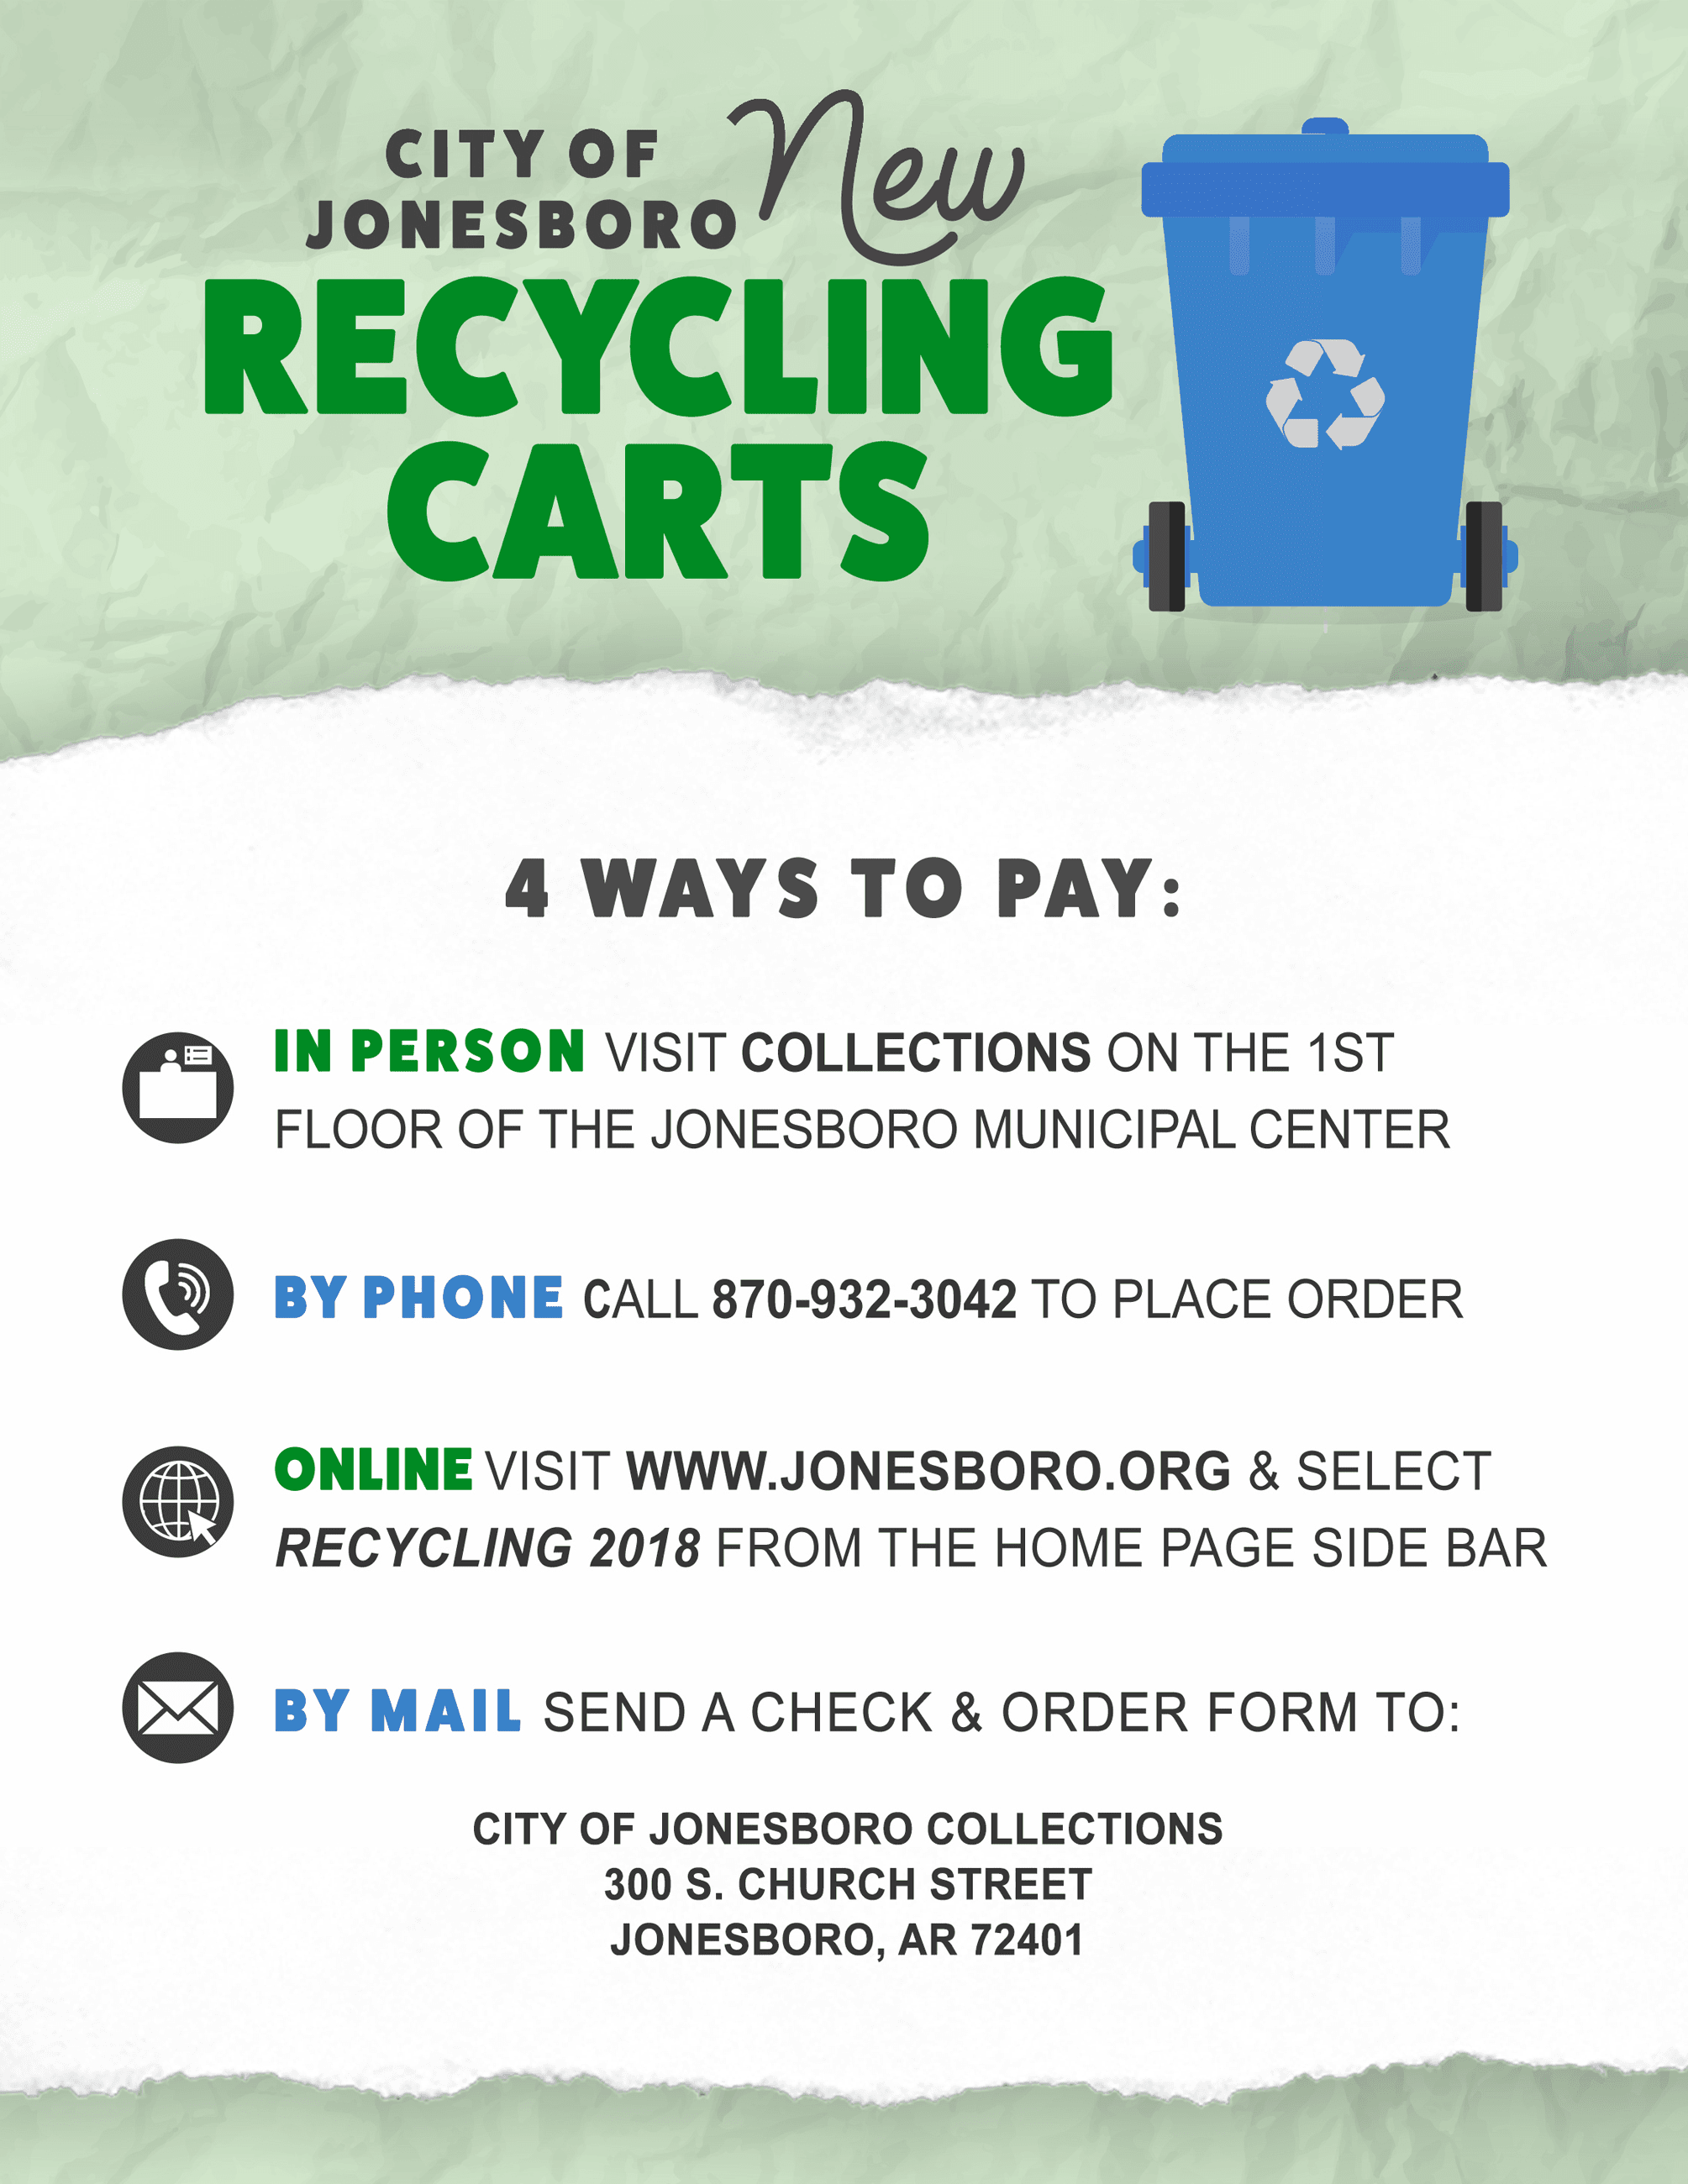 Recycling - 4 Ways To Pay